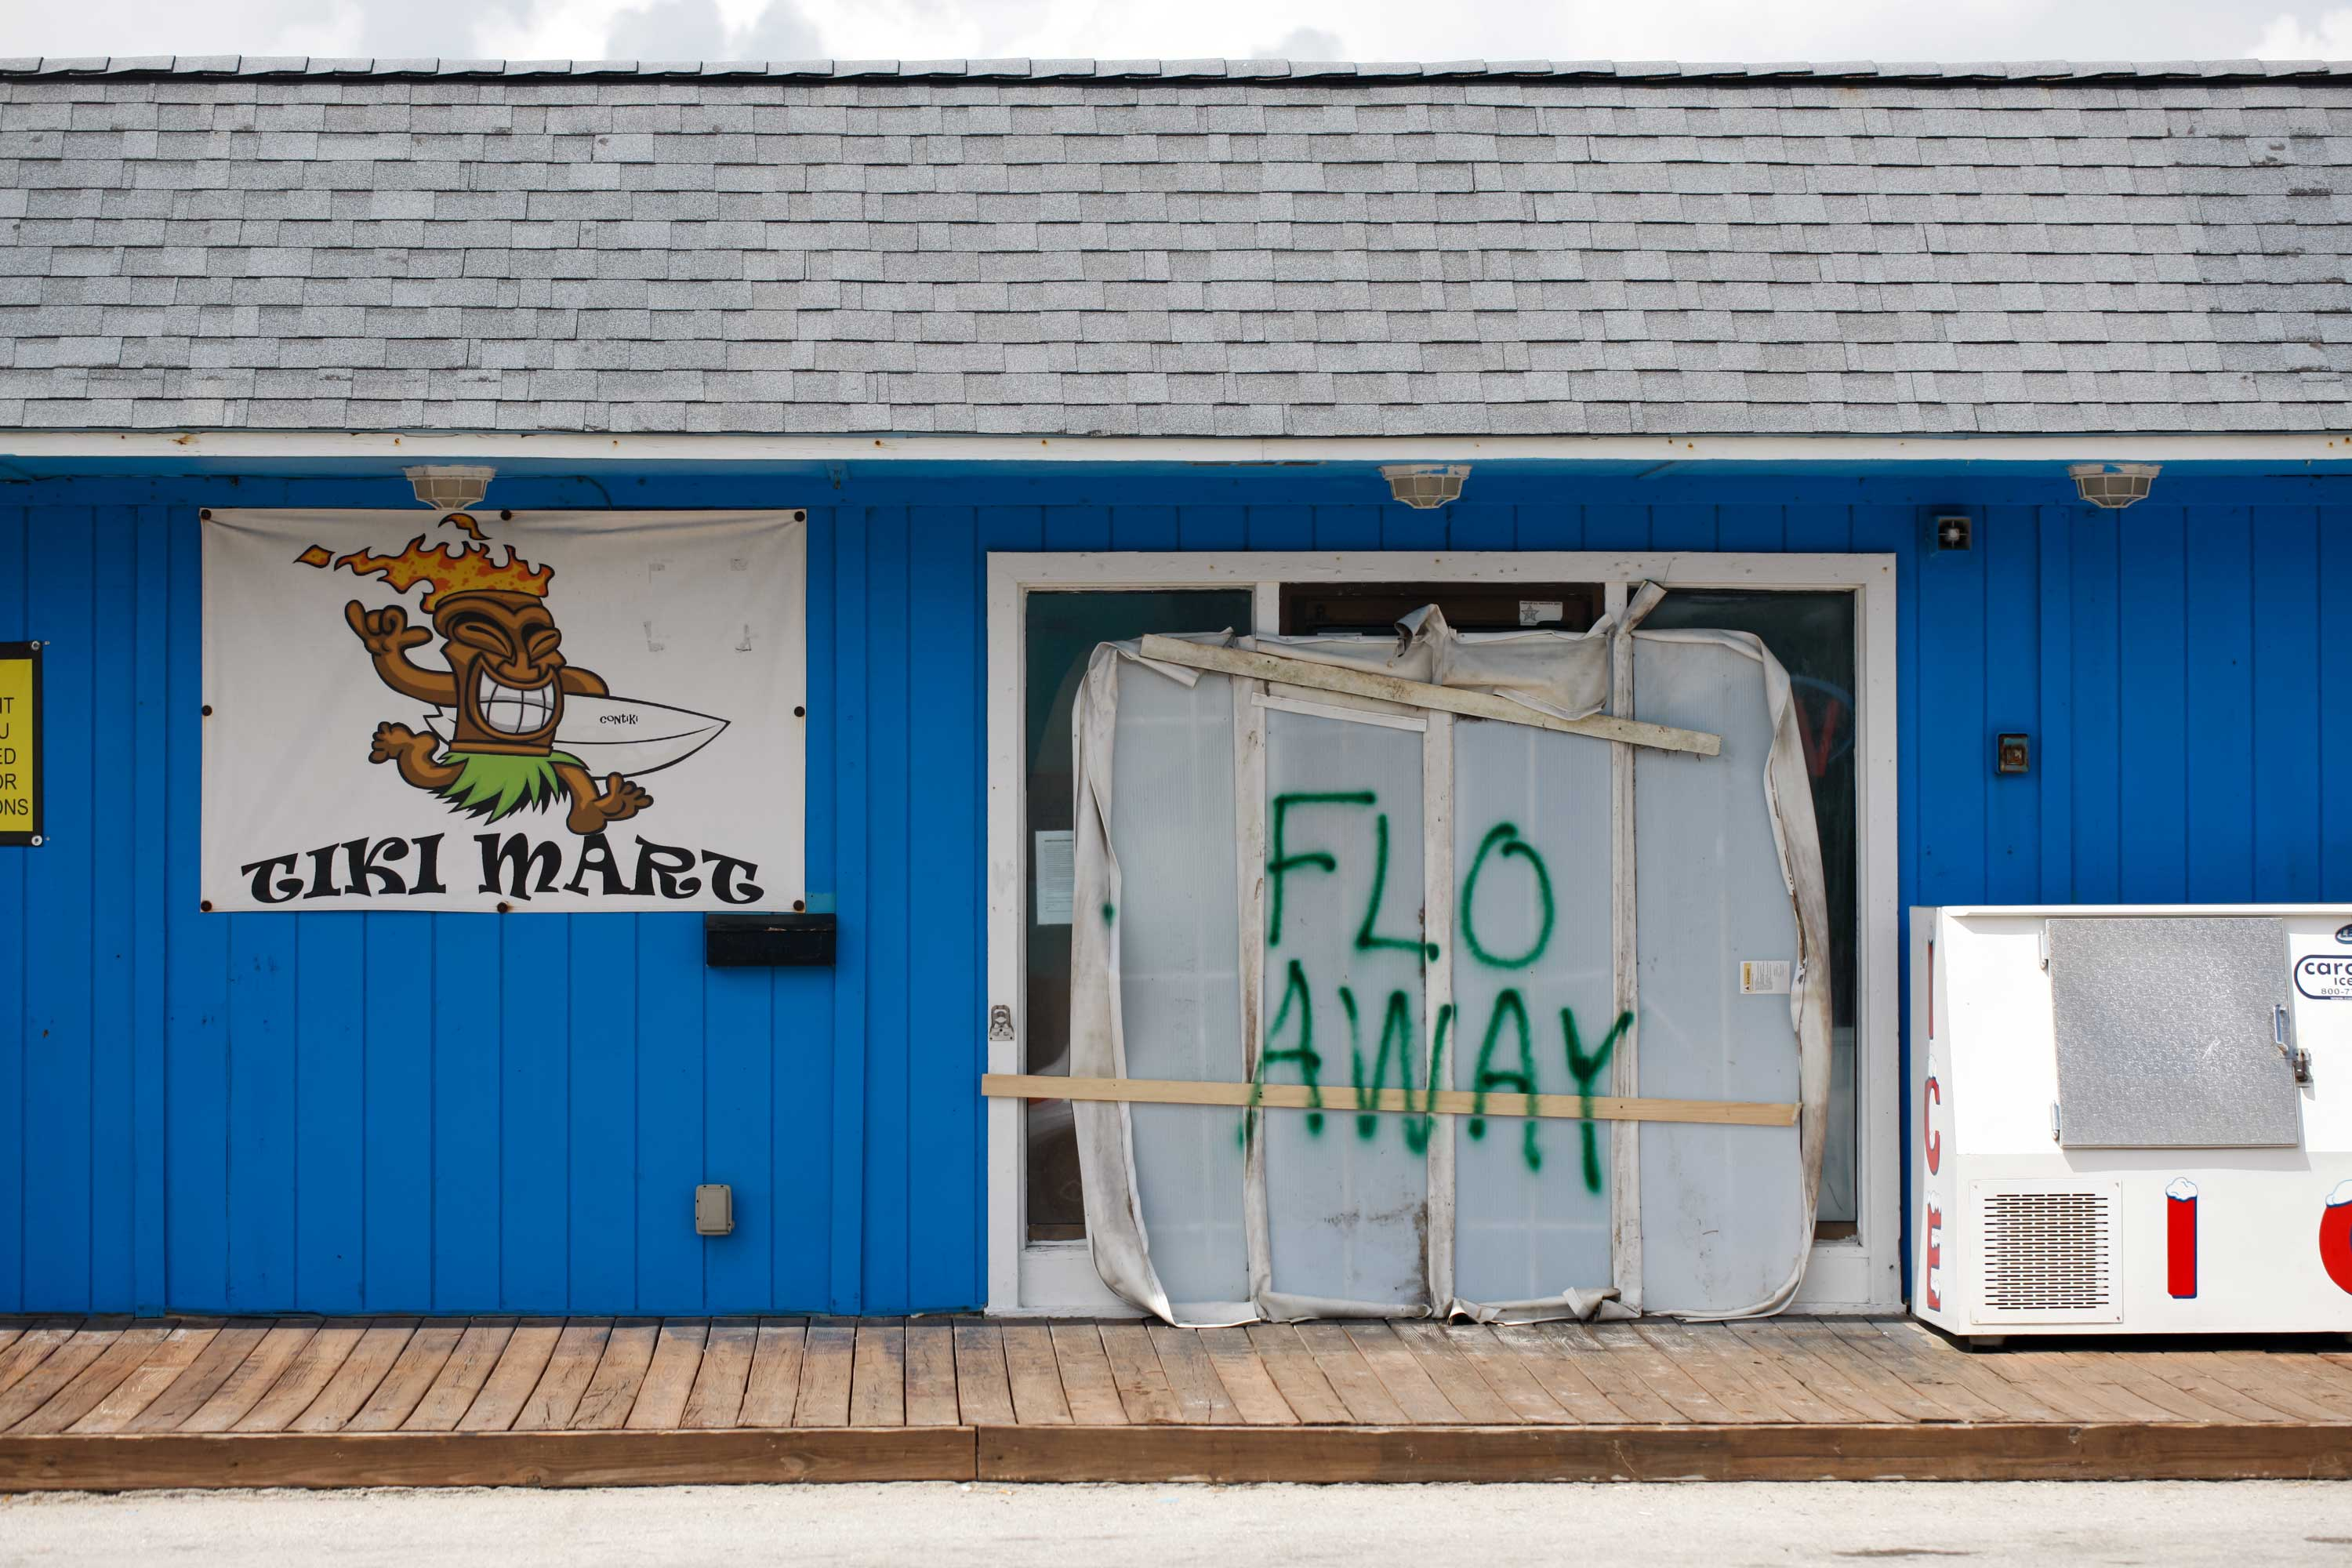 "<div class=""meta image-caption""><div class=""origin-logo origin-image none""><span>none</span></div><span class=""caption-text"">A Tiki bar sits empty with the message ""FLO AWAY"" September 11, 2018 on Topsail Island, North Carolina, where homes and businesses have boarded up. (LOGAN CYRUS/AFP/Getty Images)</span></div>"